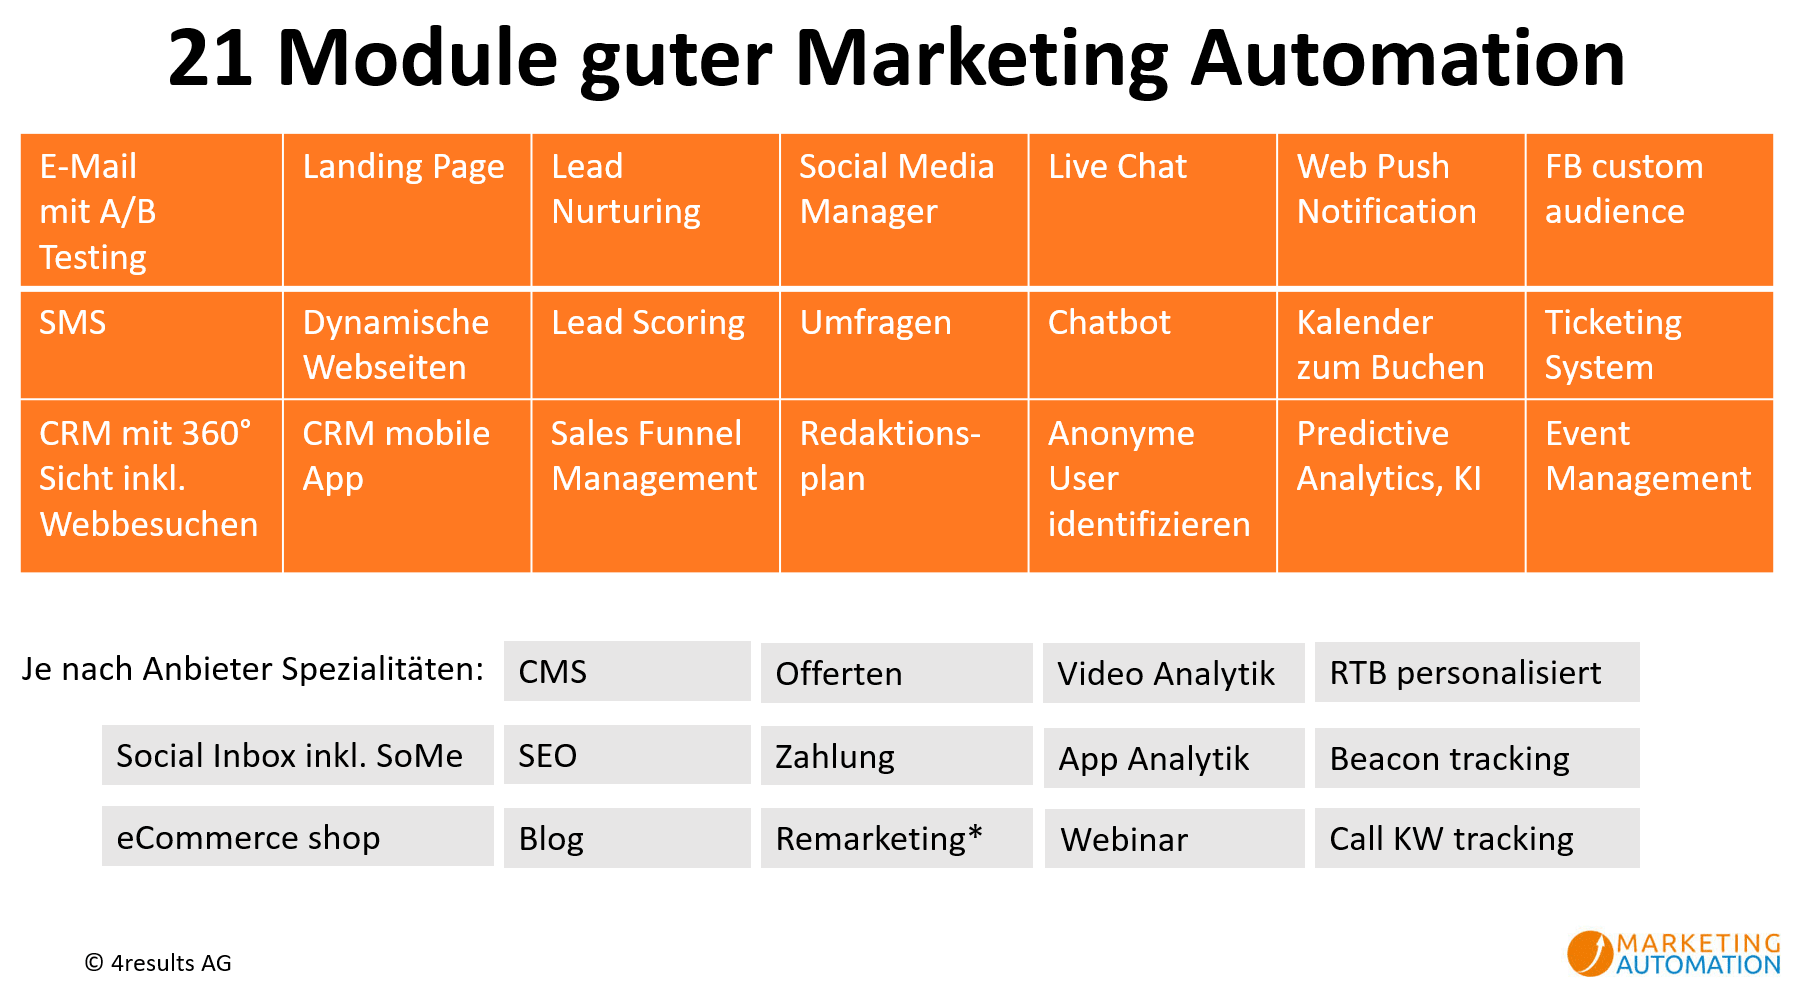 Alle Funktionen guter Marketing Automation 21 Module